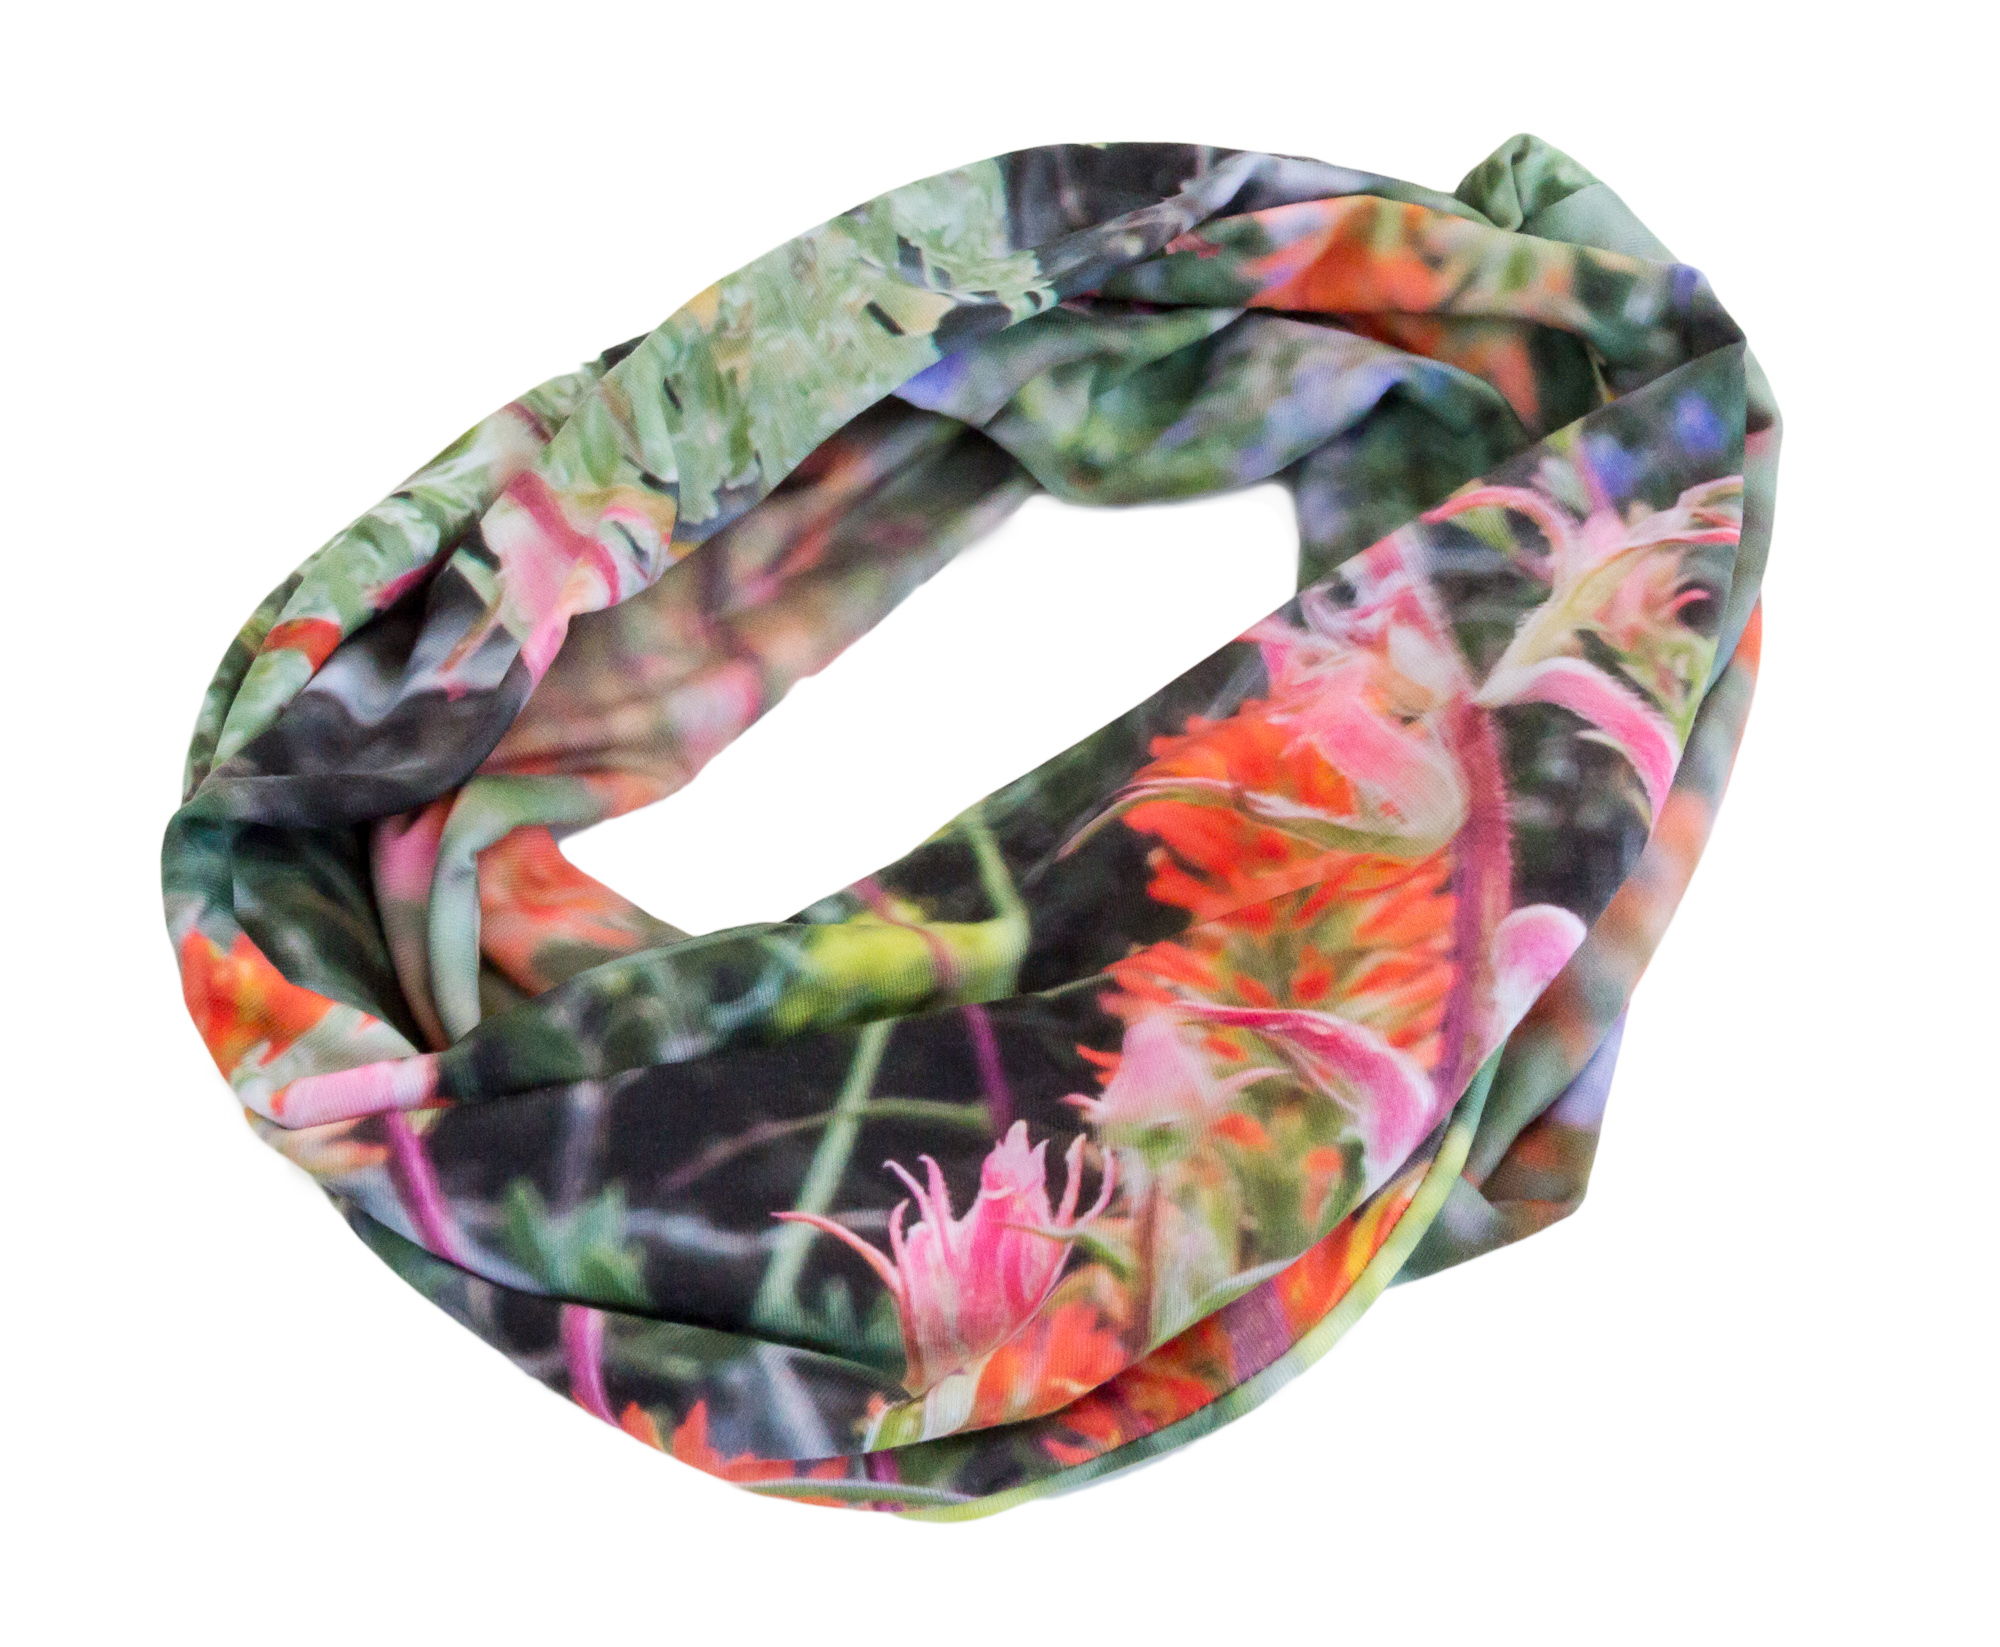 wild onion creations colorful infinity scarf wildflowers